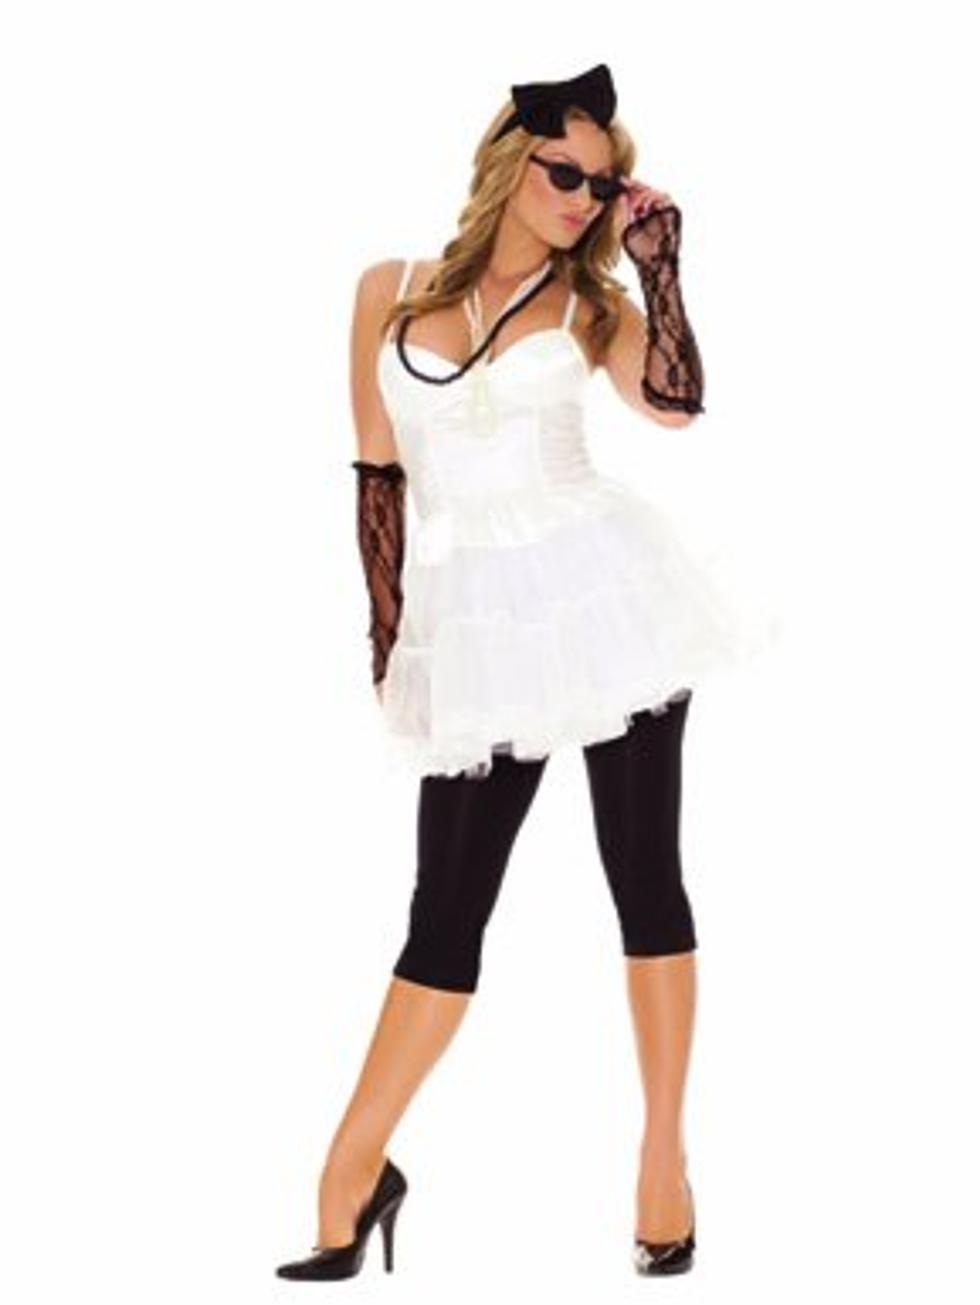 Last minute costume ideas for tonights 80s party list amazon solutioingenieria Image collections